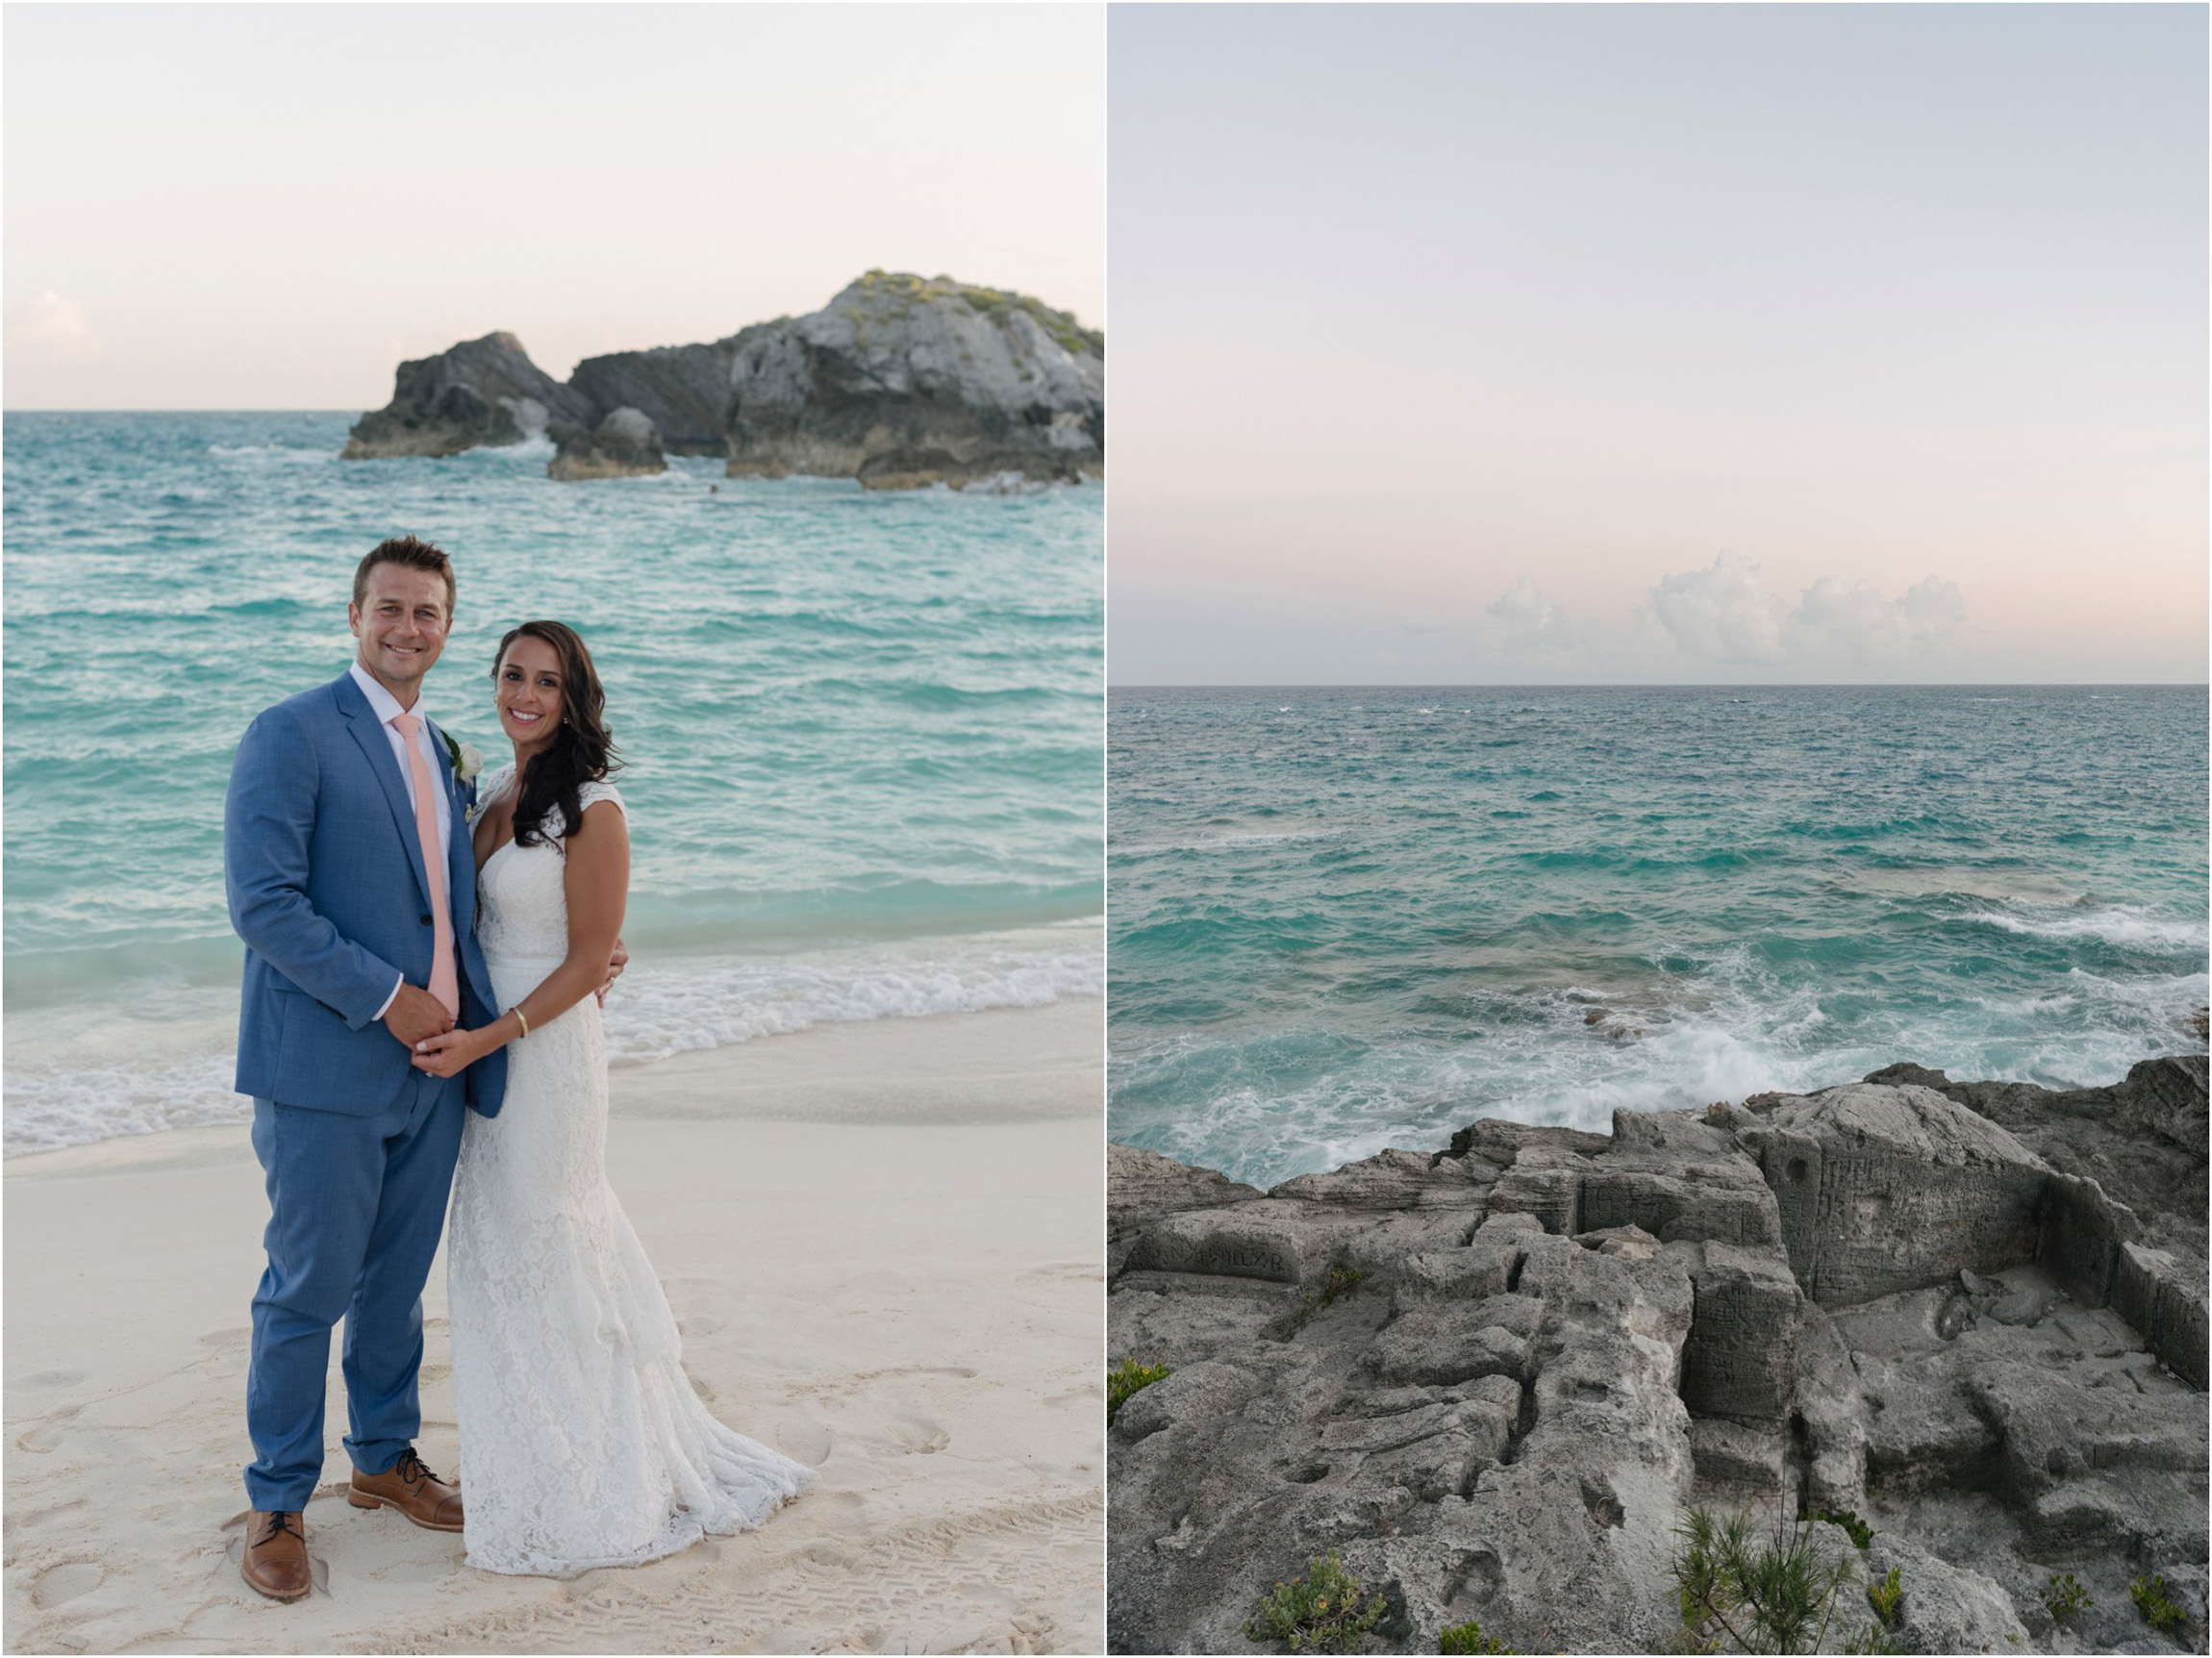 ©FianderFoto_Bermuda Wedding Photographer_Fairmont Southampton_Wedding_Anna_Thomas_098.jpg